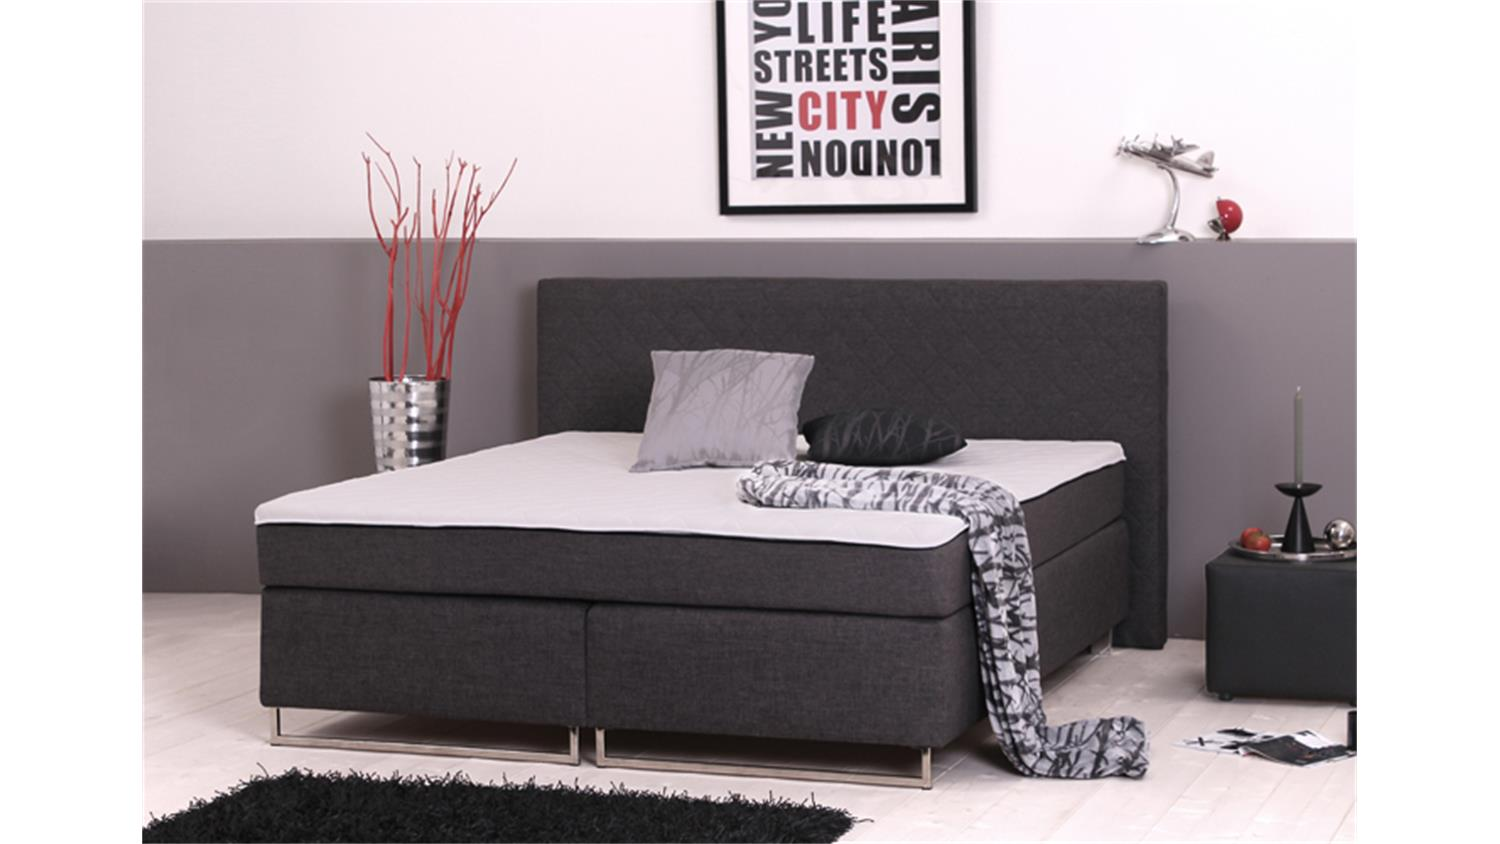 boxspringbett bx760 liegefl che 180x200cm taschenfederkern. Black Bedroom Furniture Sets. Home Design Ideas